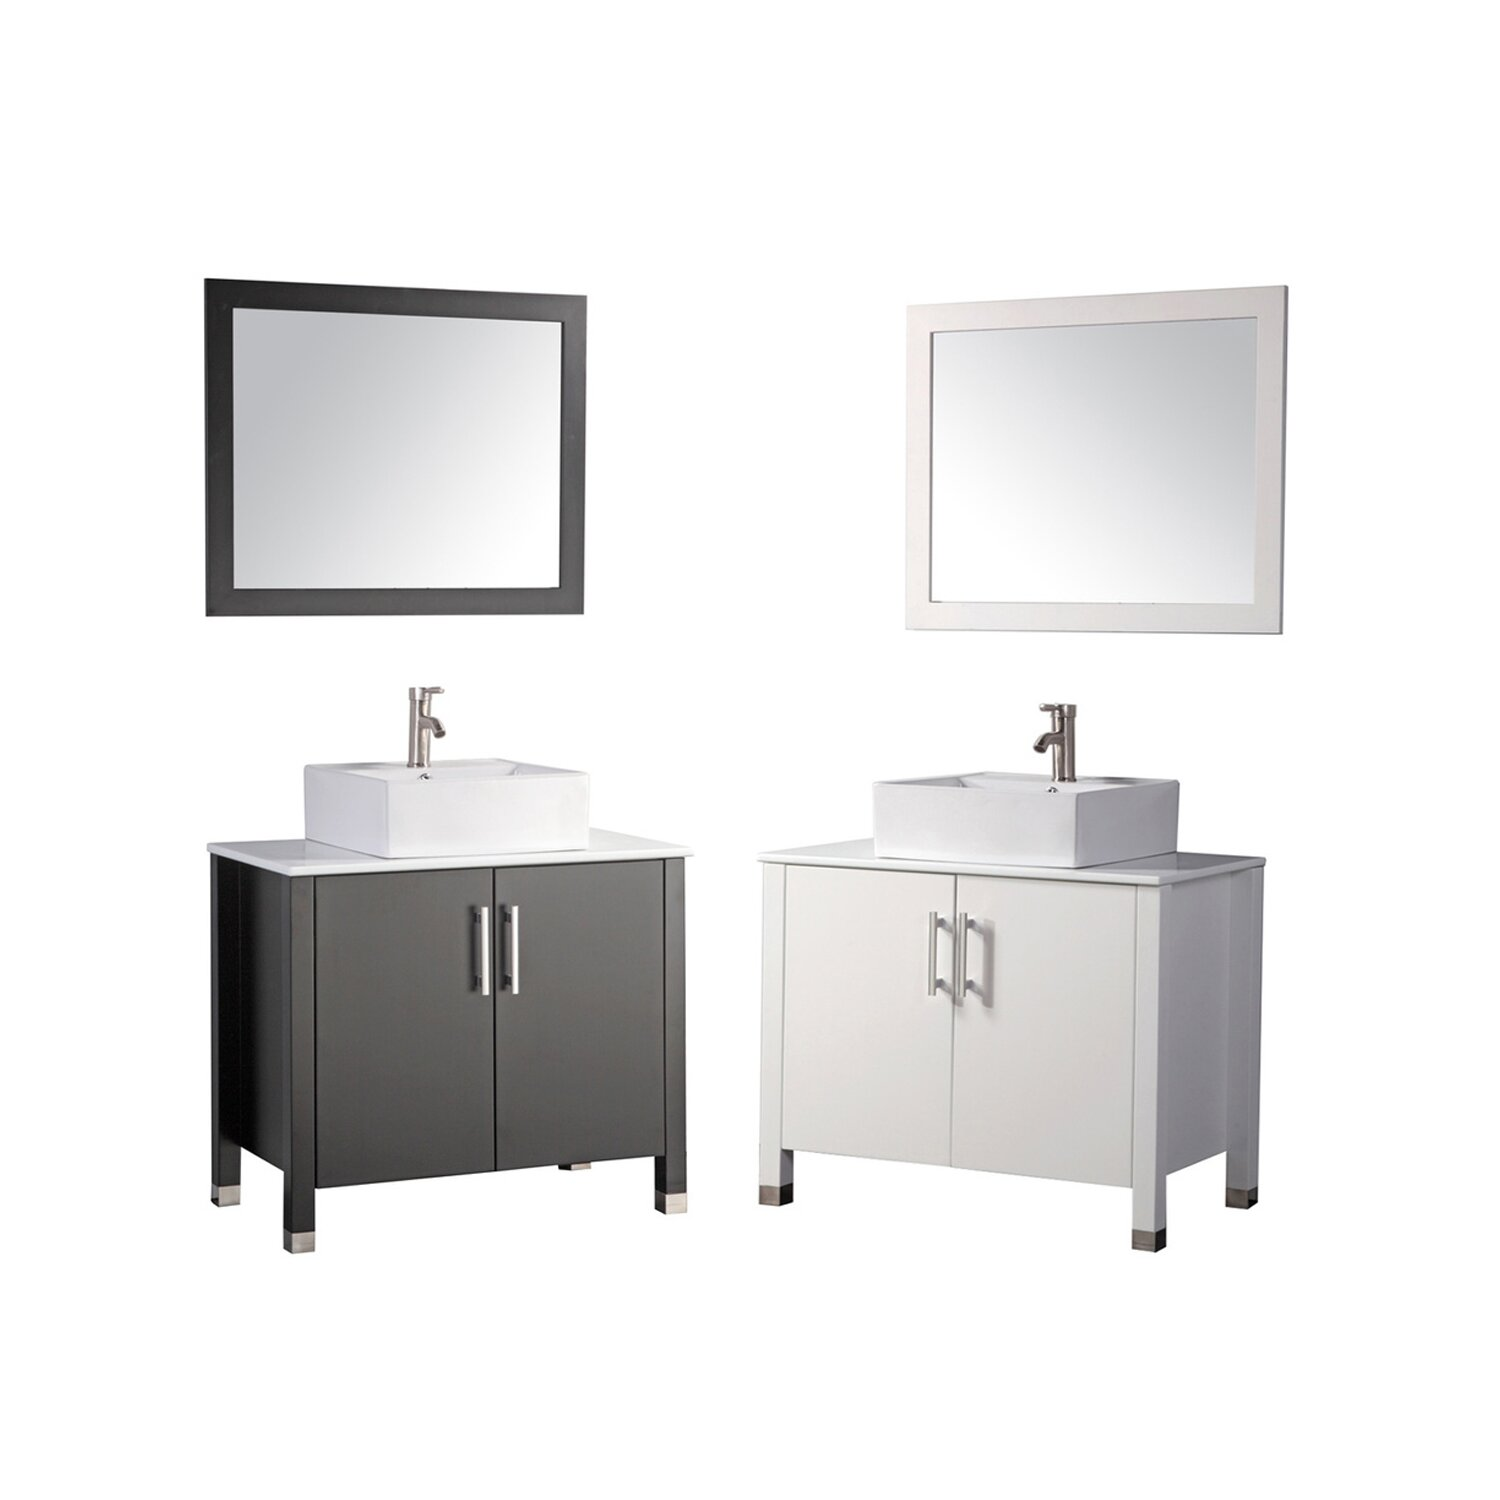 mtd vanities aruba 36 single sink bathroom vanity set with mirror